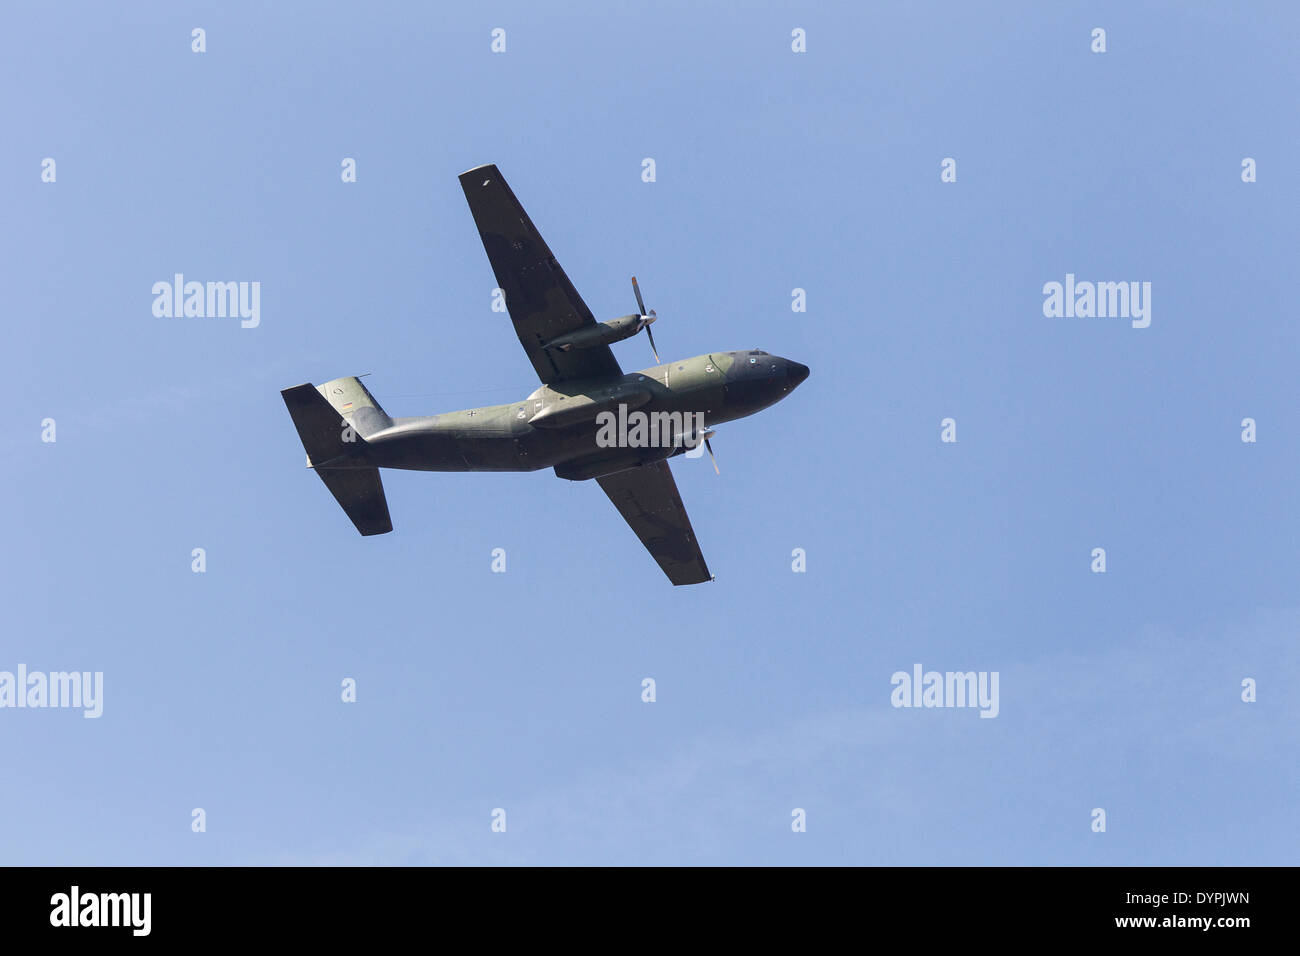 Hercules C160 50-92, The Air Component  COMOPSAIR, formerly the Belgian Air Force - Stock Image